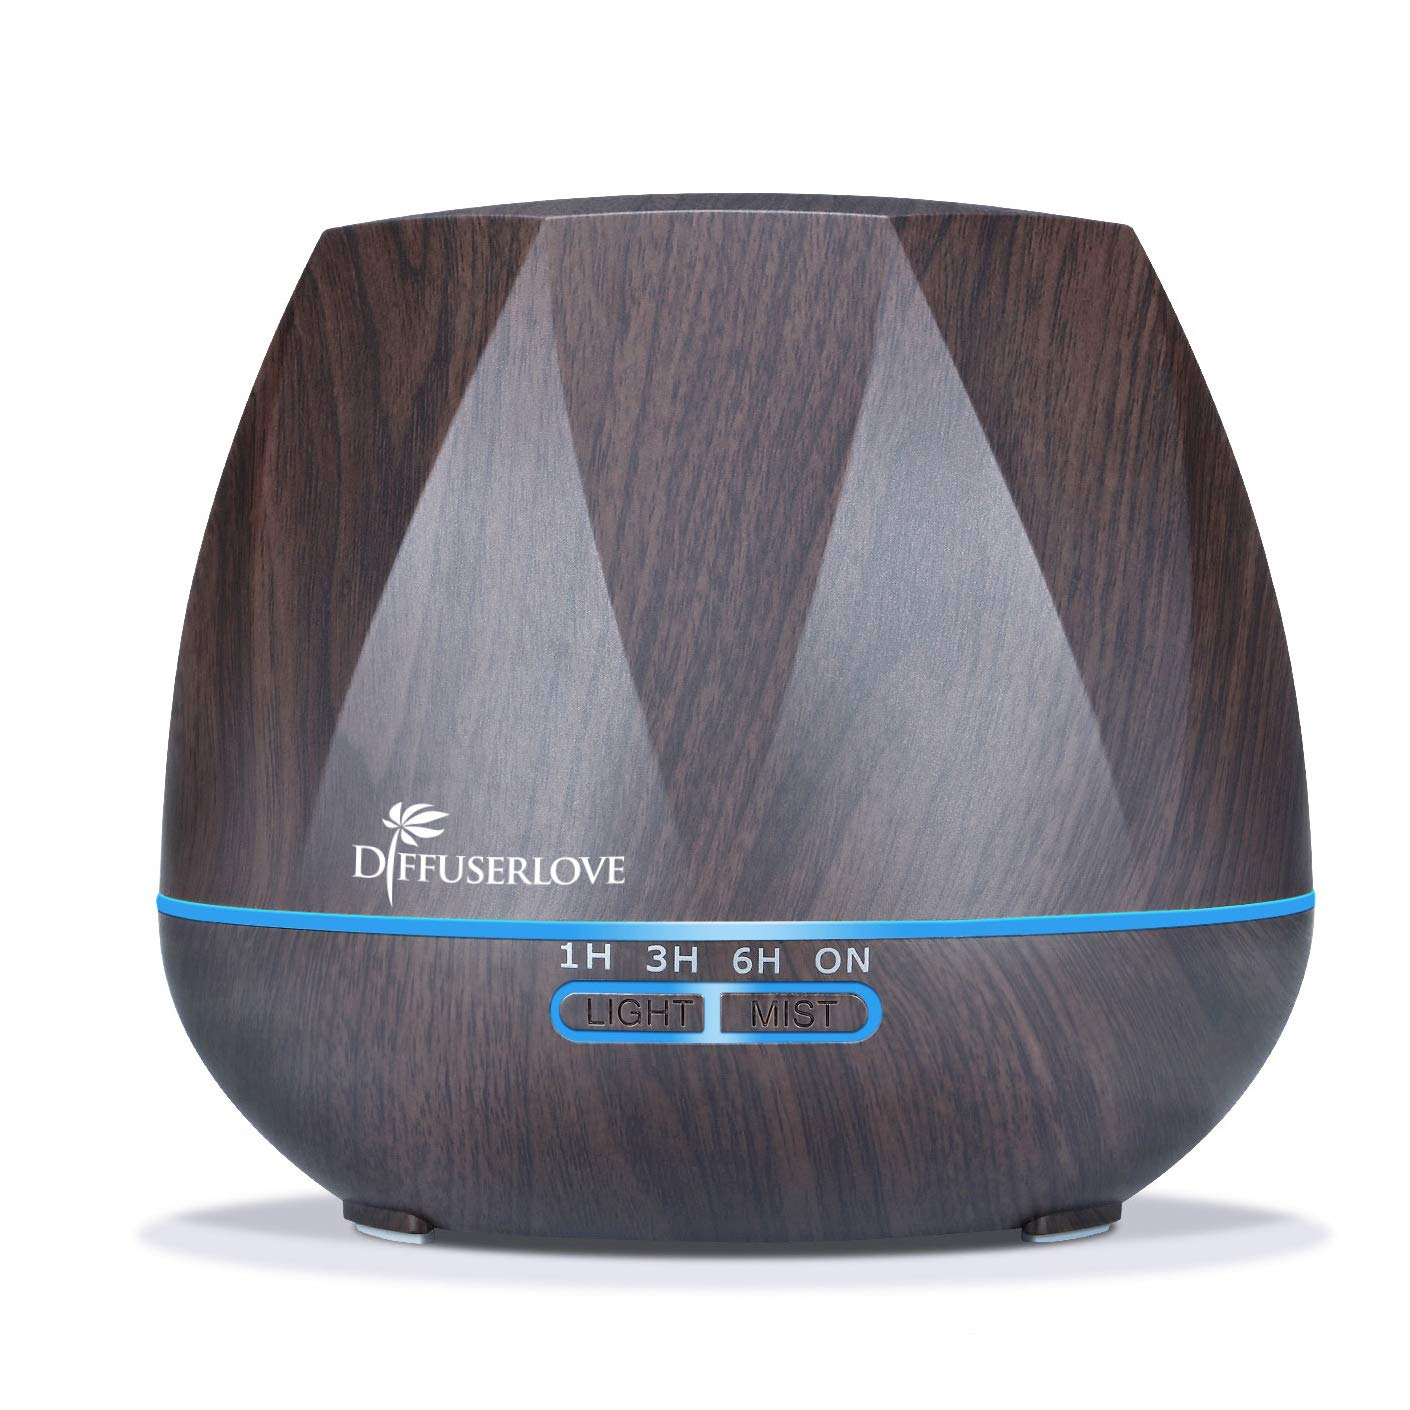 Diffuserlove Ultrasonic Cool Mist Essential Oil Diffuser 550ml Dark Wood Grain Aromatherapy Diffusers and Air Humidifiers Set Waterless Auto Shut-Off for Home Yoga Office Kitchen by Diffuserlove